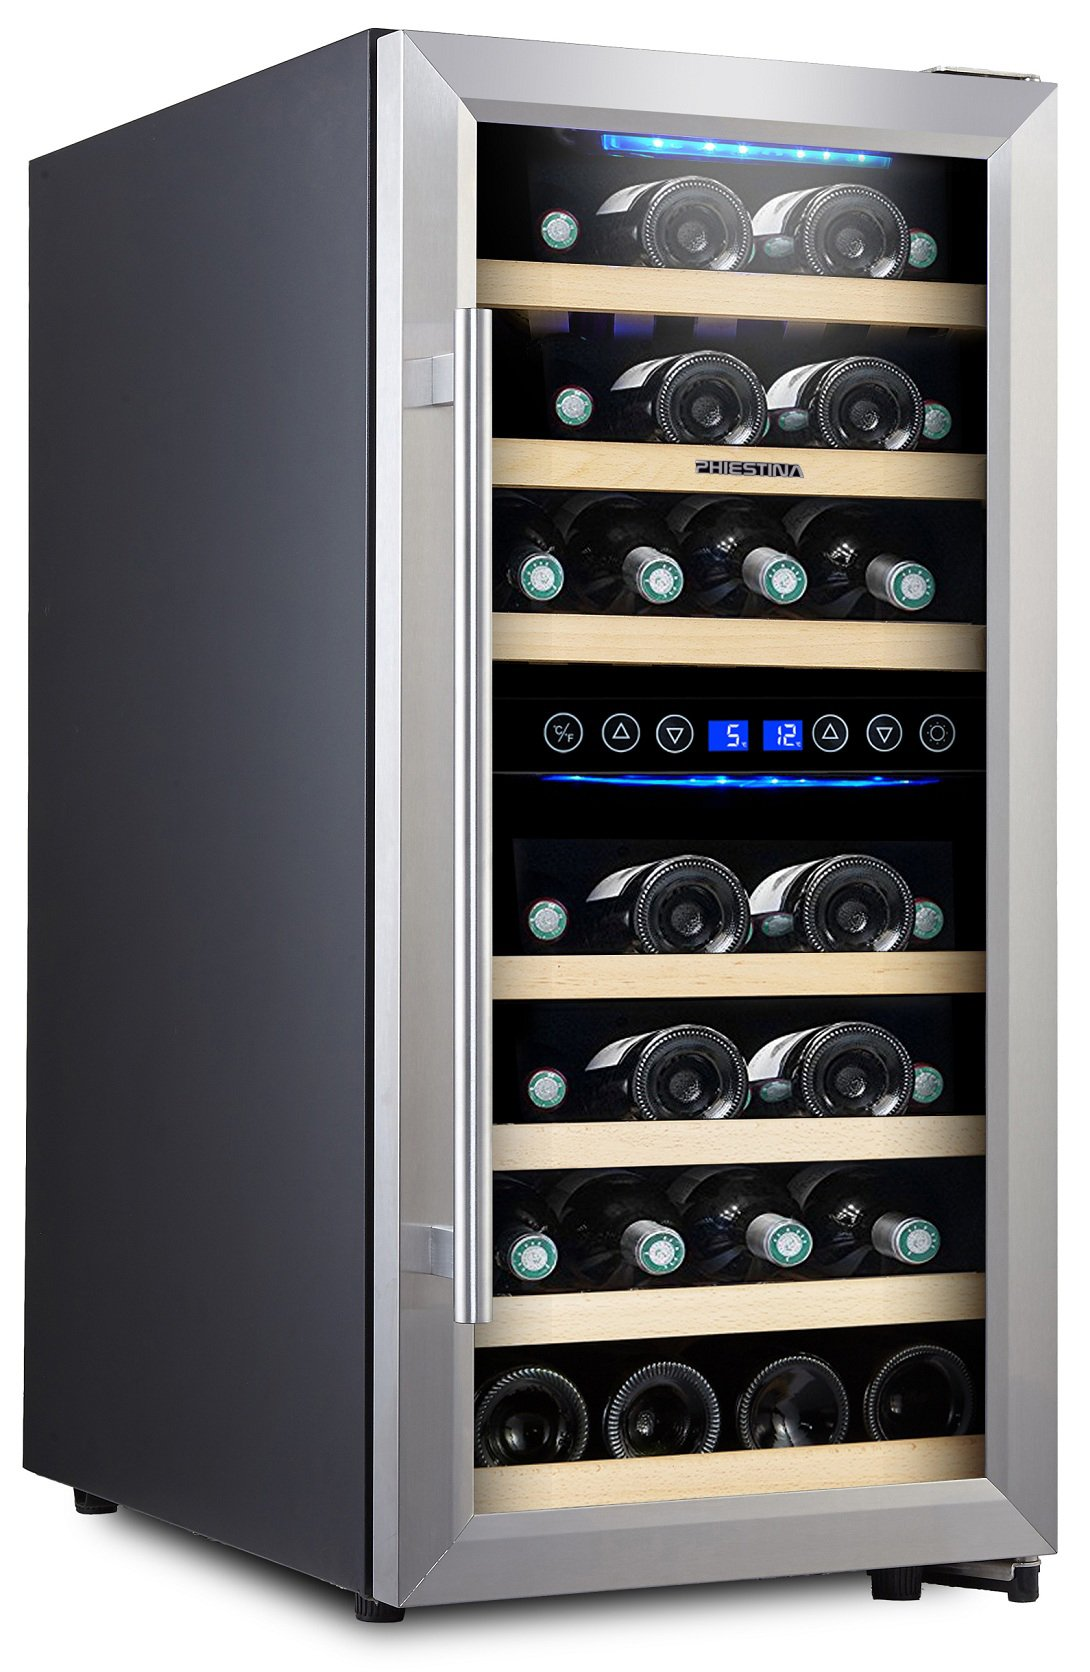 Phiestina 33 Bottle Wine Cooler Double Zone Steel Door with Handle by phiestina (Image #1)